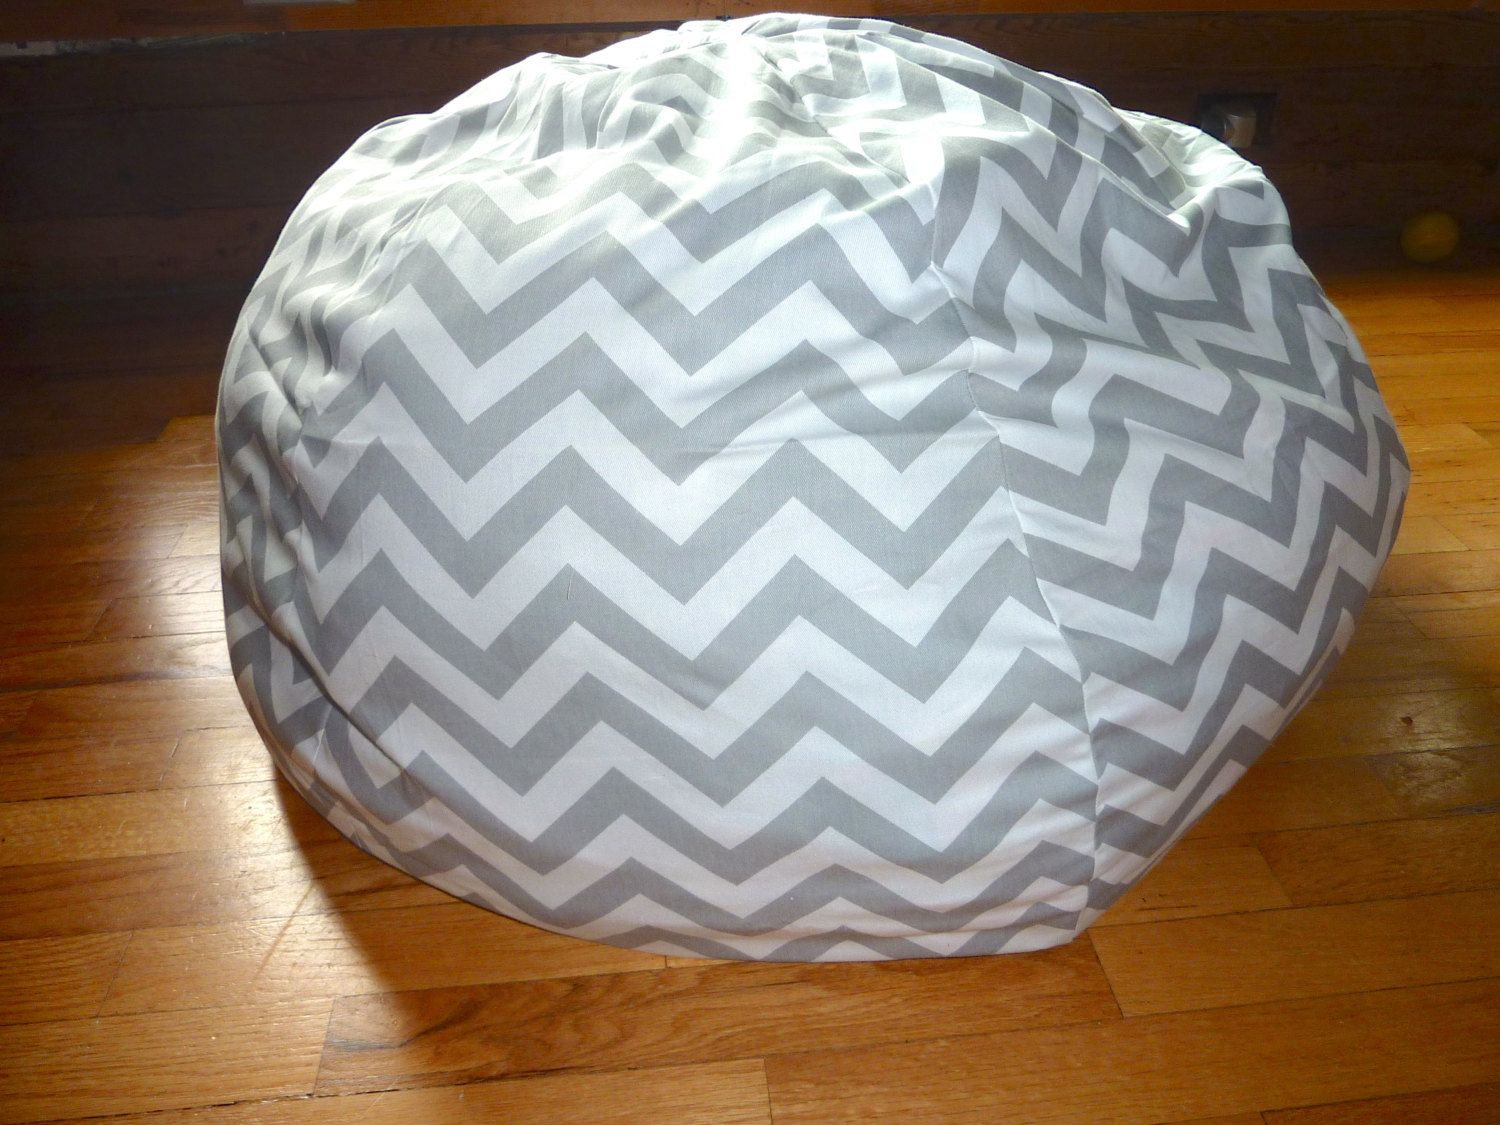 Grey & White Chevron Bean Bag Chair Cover, Silver, Gray, Red, Yellow, Blue, Black, Pink, Orange, Zig Zag, Stripes, Etsy Kids, Gift Under 75 by CopperBugCompany on Etsy